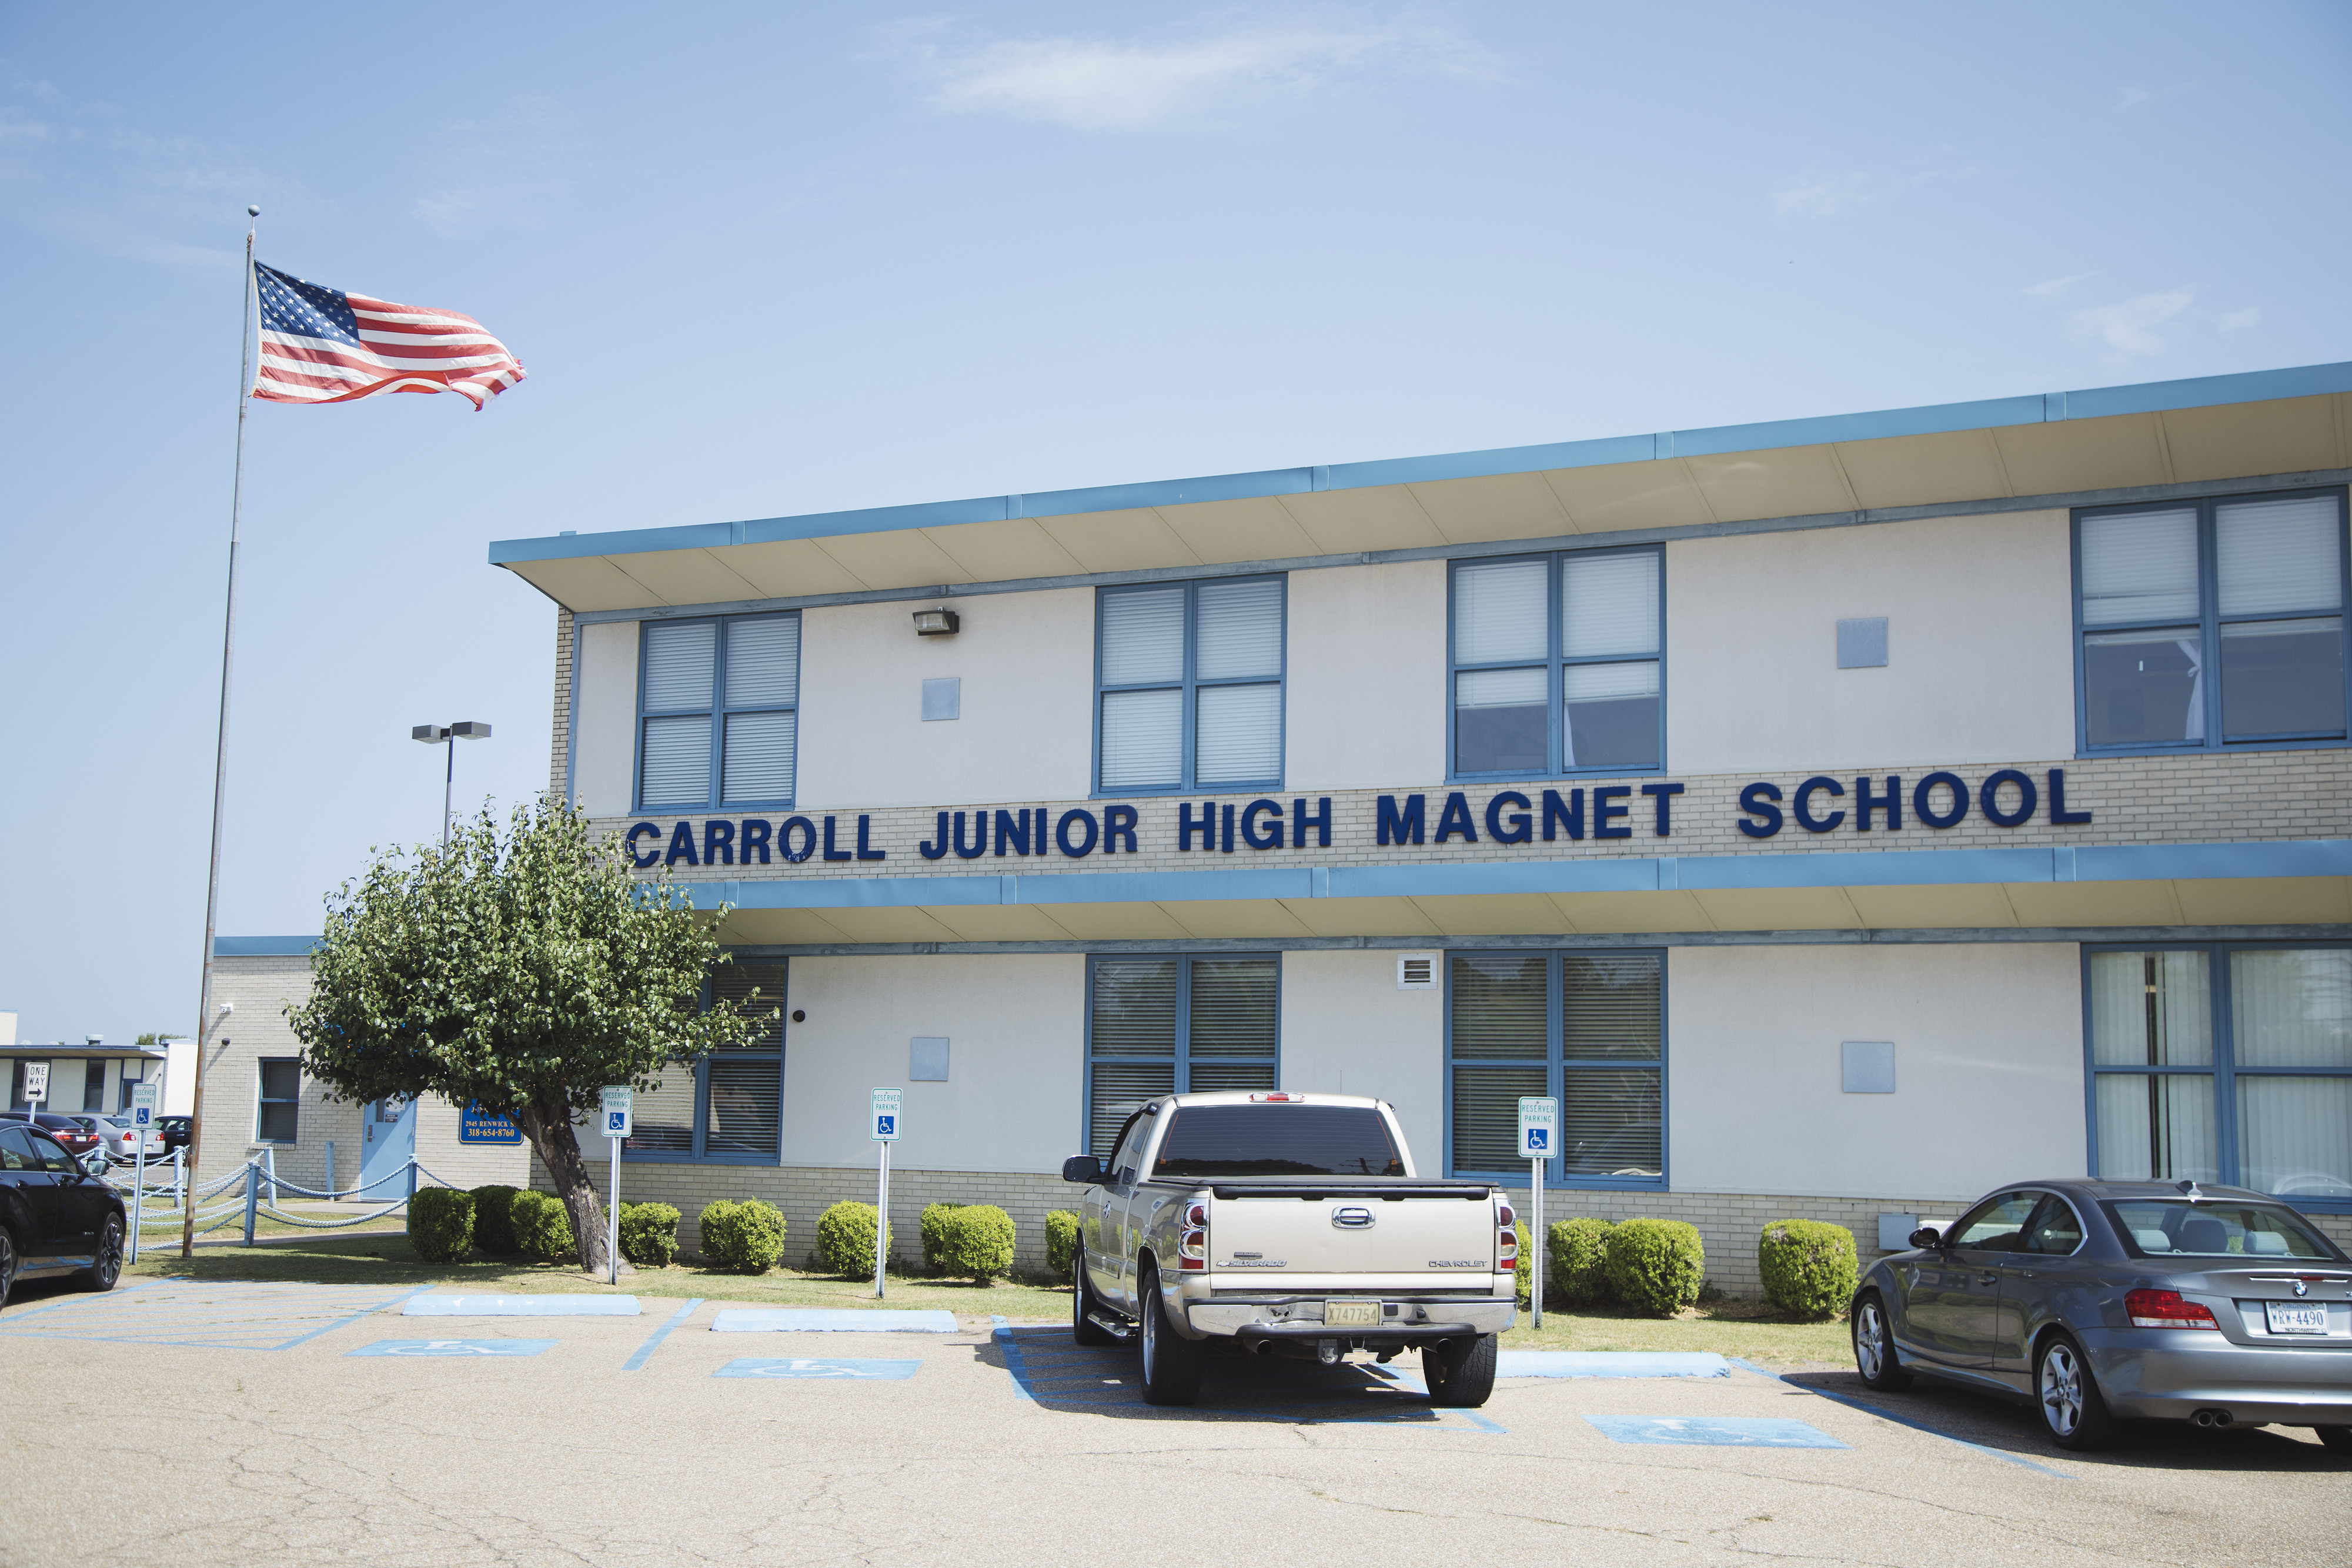 Carroll Junior High School Image